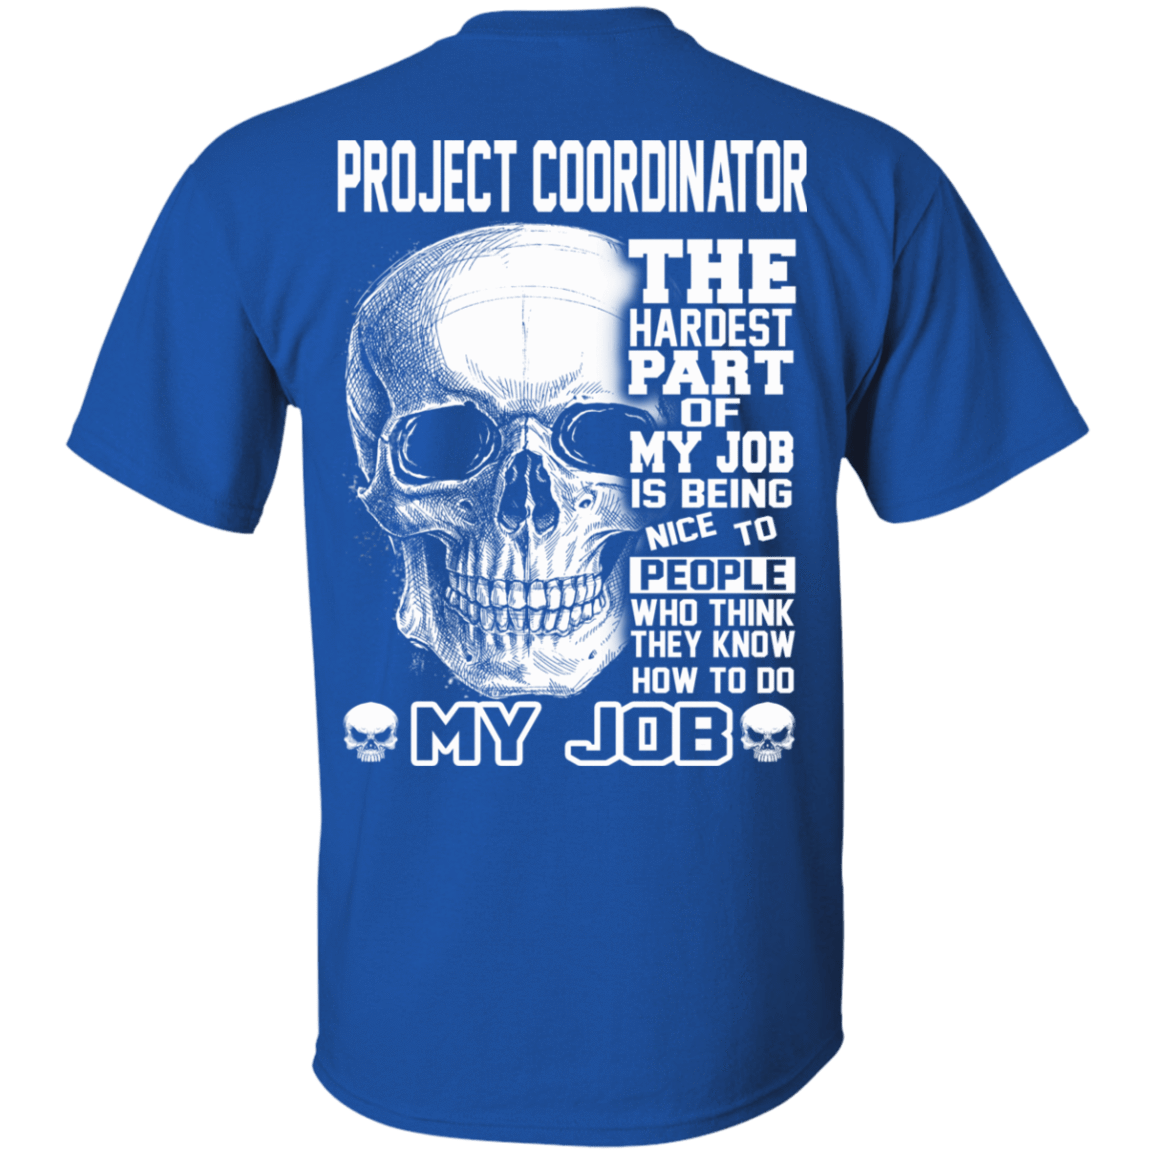 Project Coordinator The Hardest Part Of My Job 22-110-71881736-249 - Tee Ript